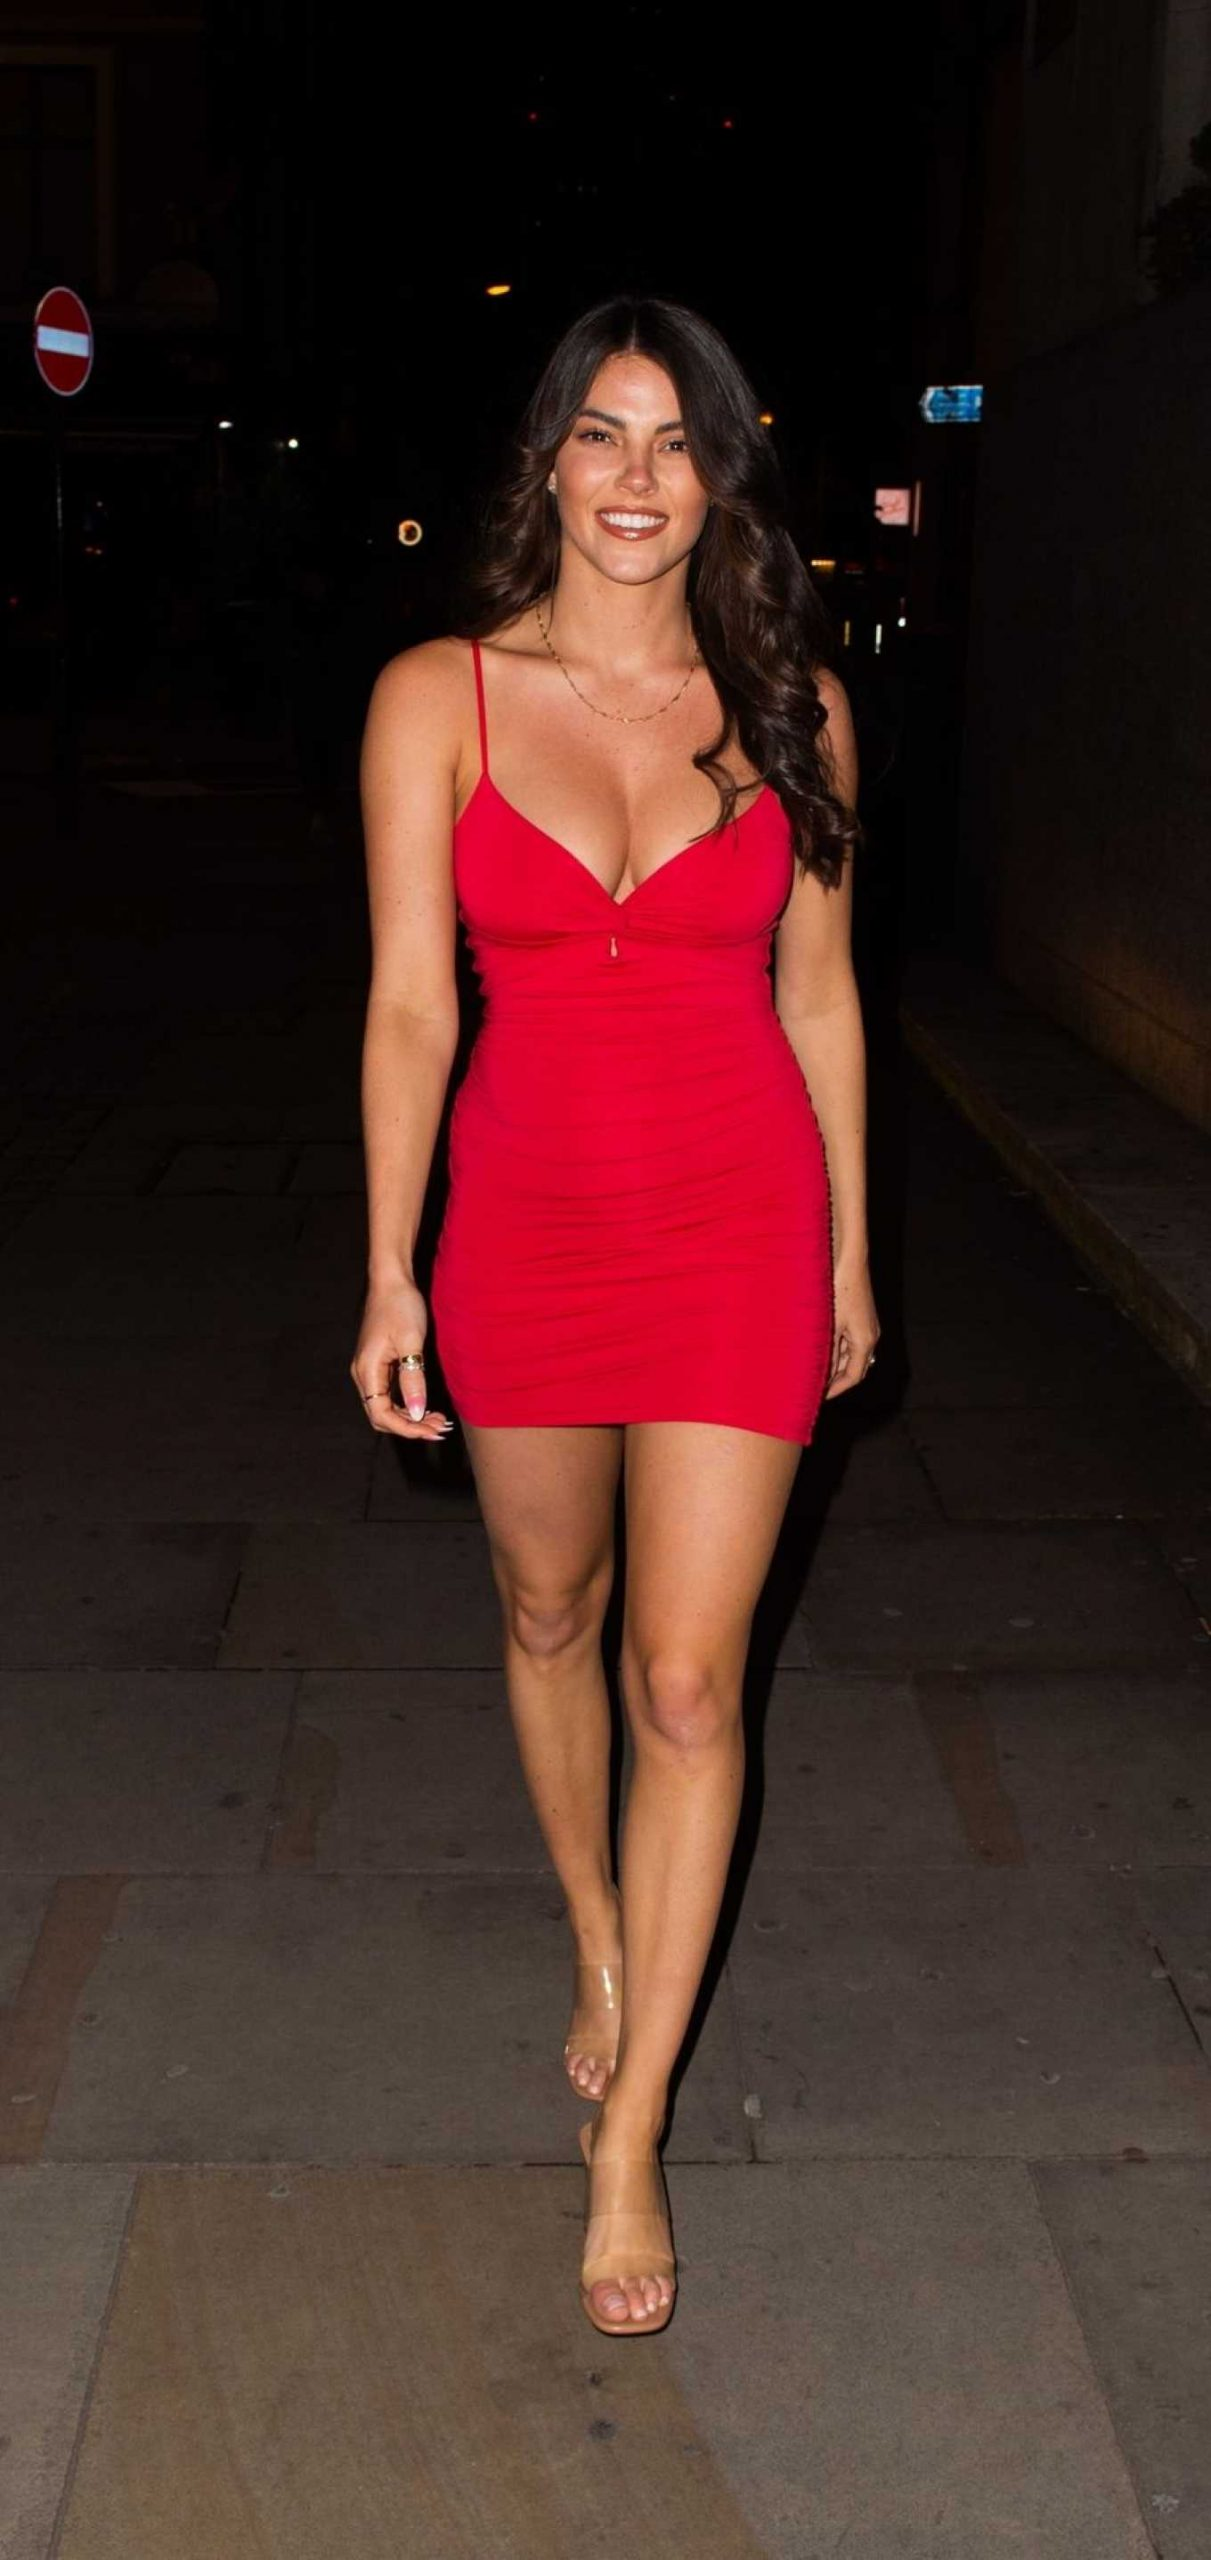 Courthouse Hotel Shoreditch: Rebecca Gormley 2020 : Rebecca Gormley In Red Mini Dress-02